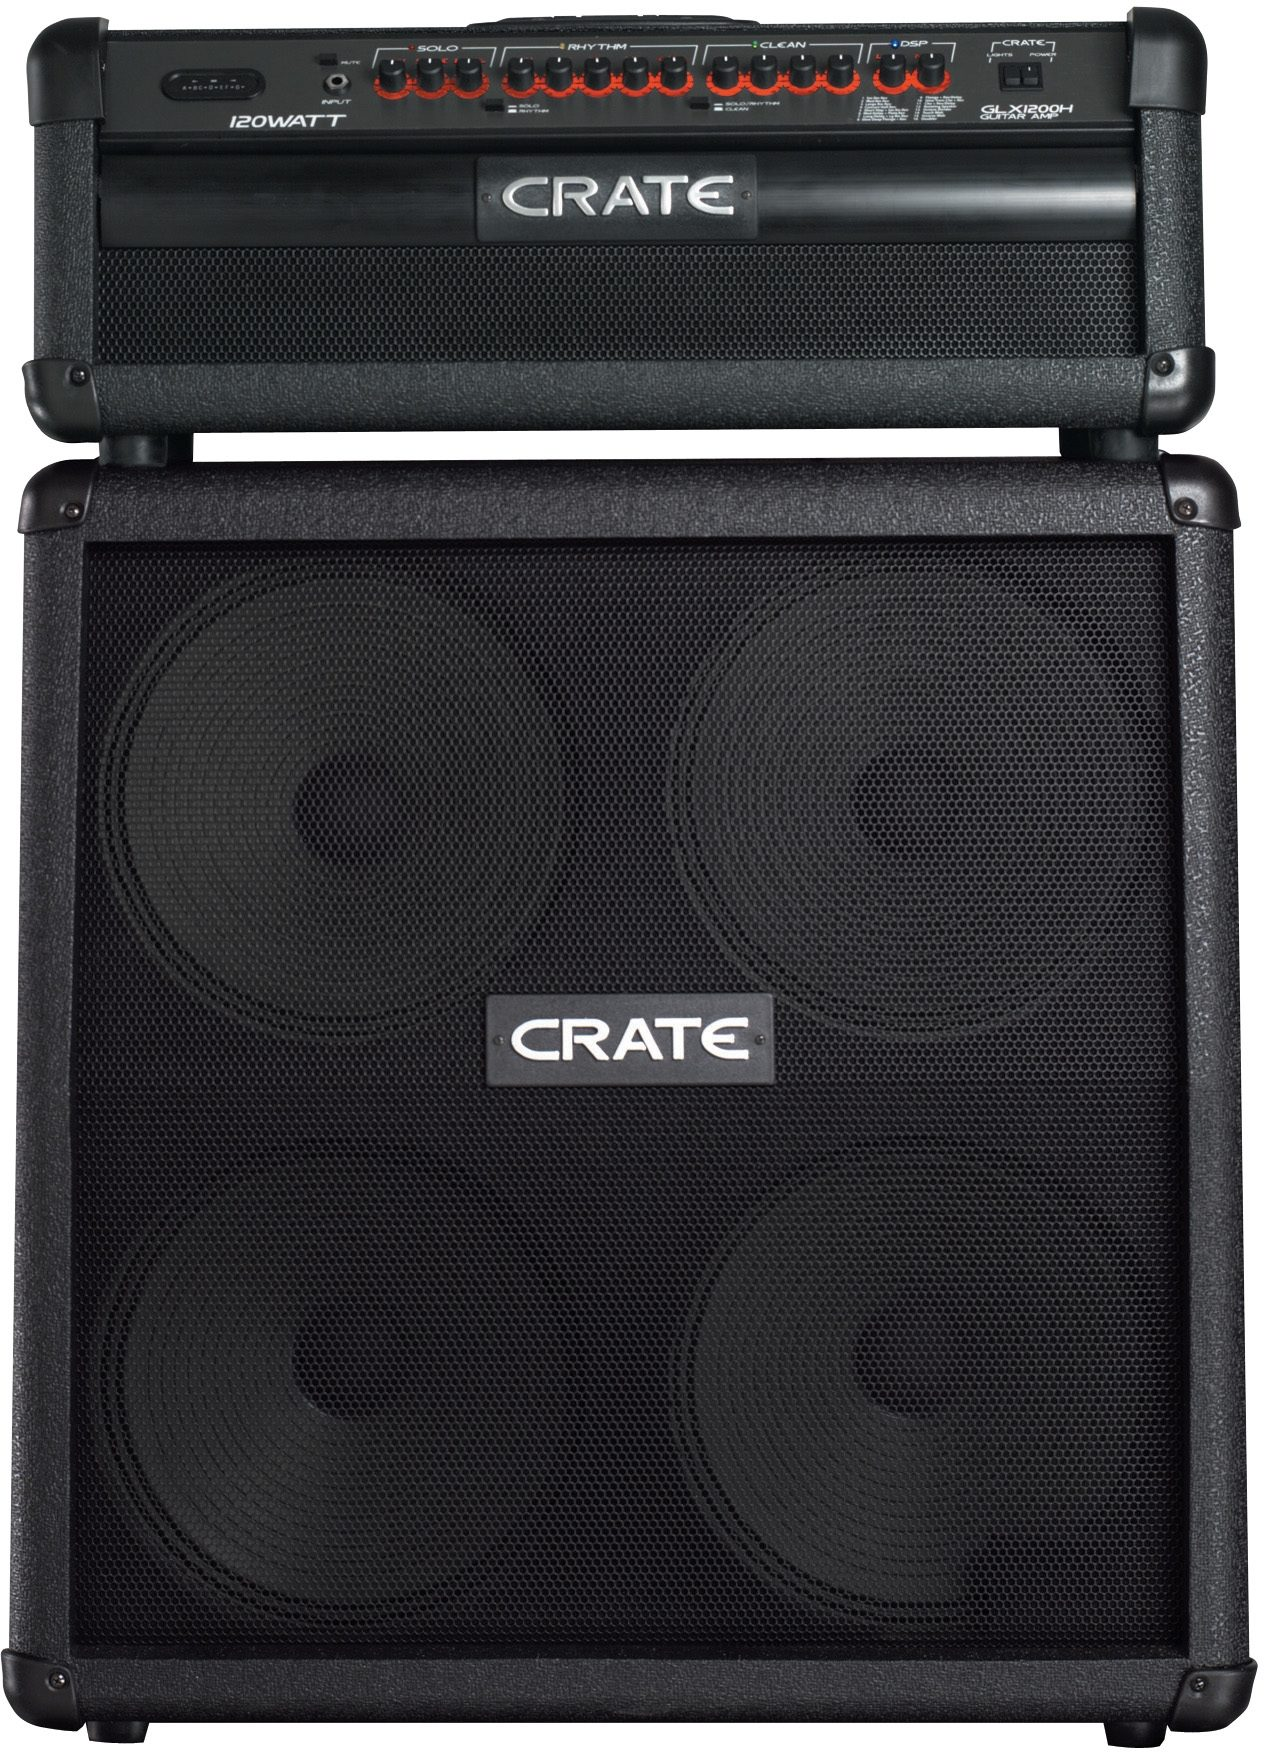 Crate GLX1200 H Half Stack with G412SL User Reviews  zZounds